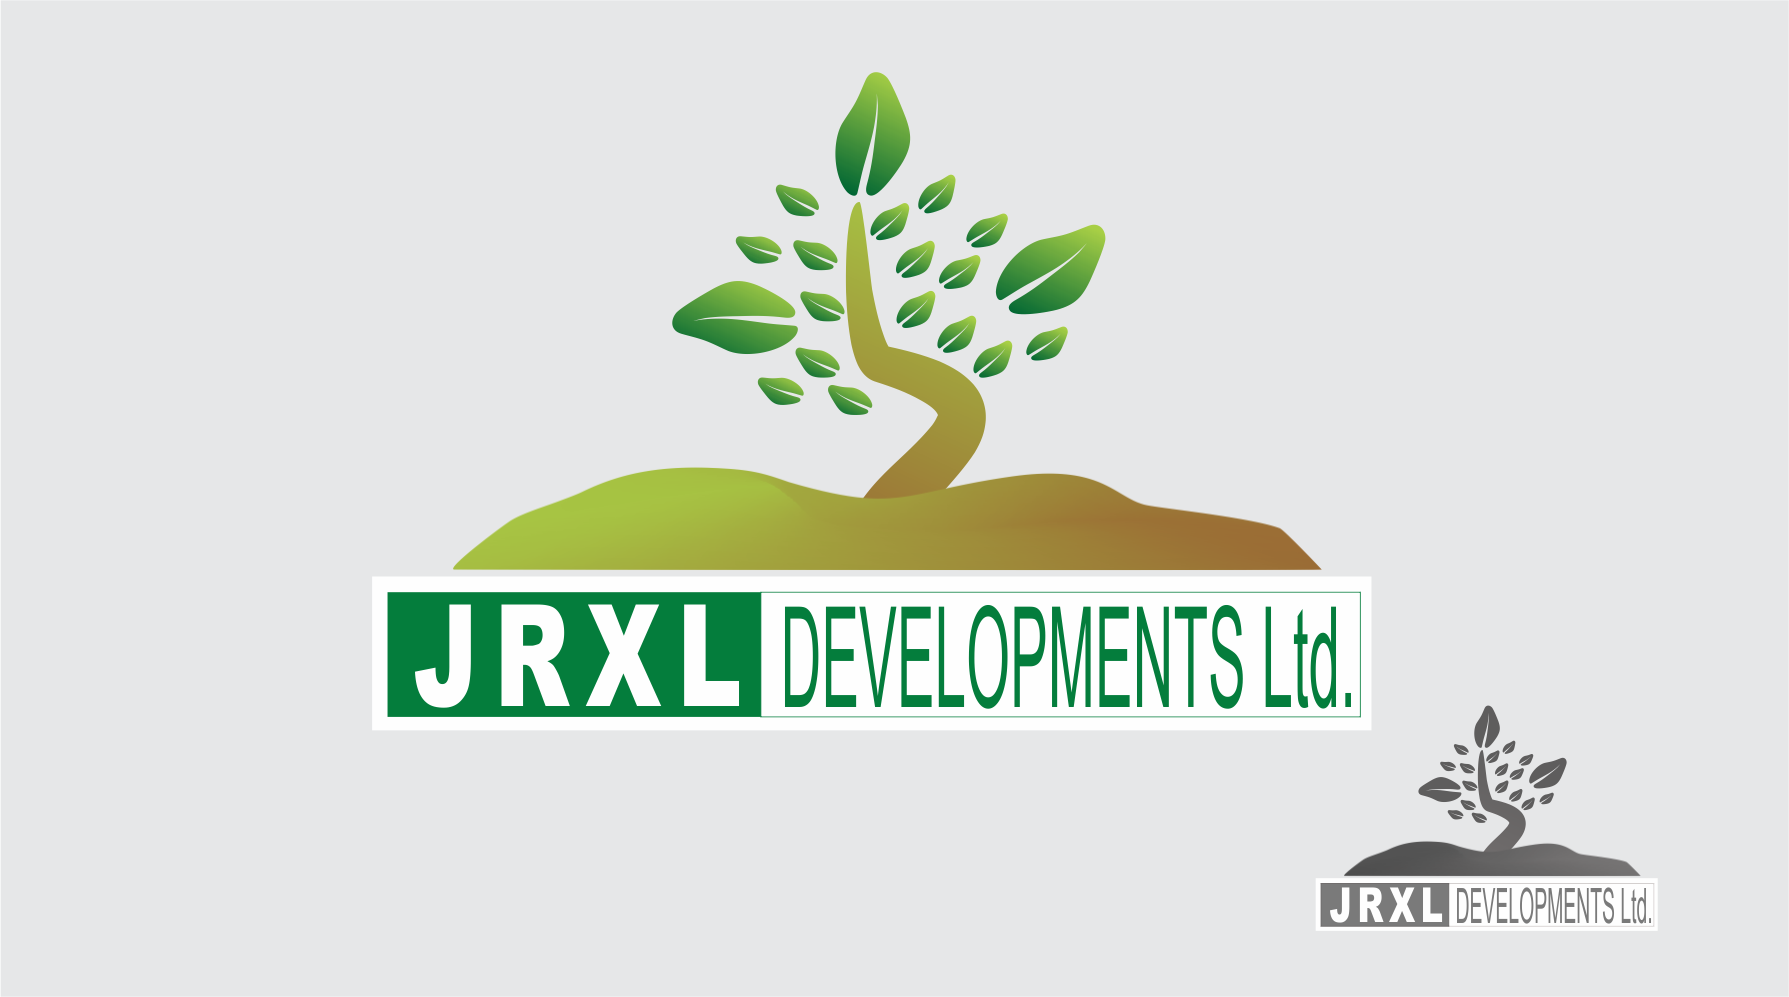 Logo Design by Private User - Entry No. 7 in the Logo Design Contest JRXL DEVELOPMENTS LTD Logo Design.